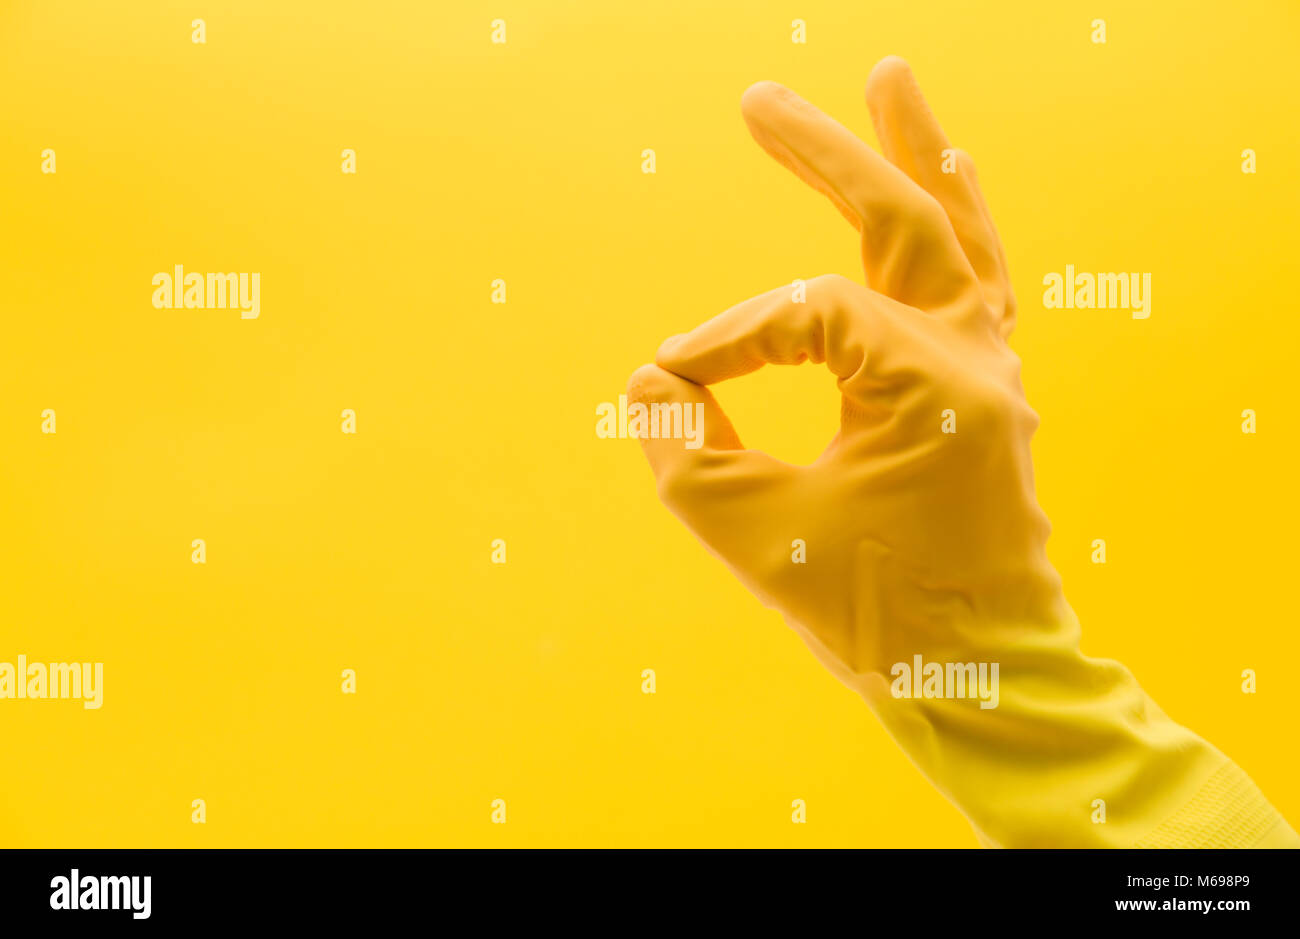 Okay hand gesture made by a hand in a yellow rubber cleaning glove - Stock Image